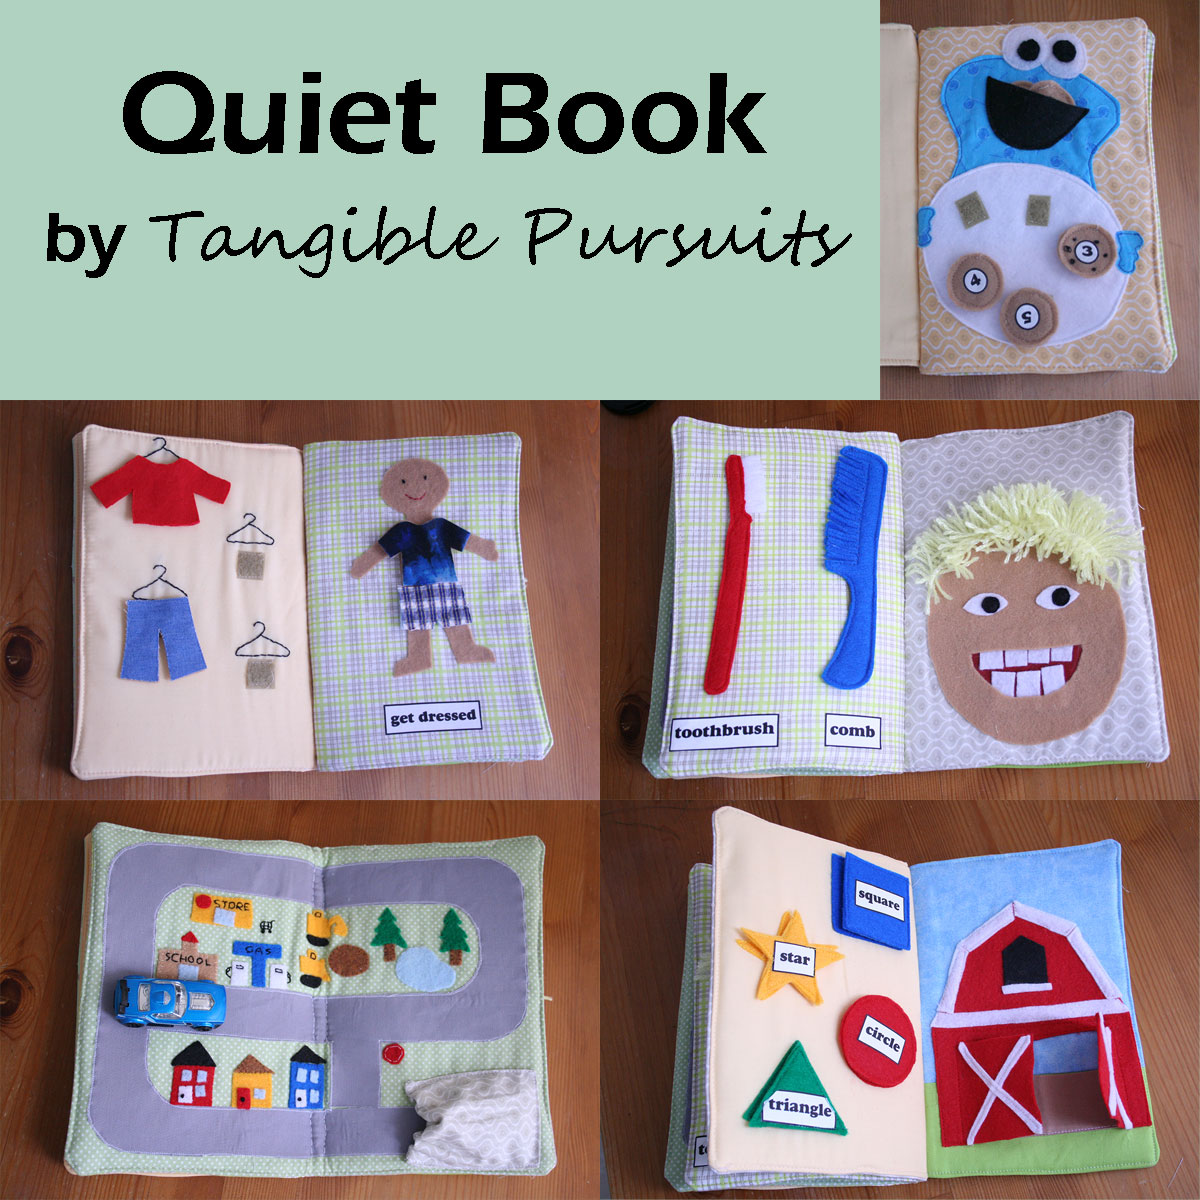 Tangible Pursuits: Quiet Book